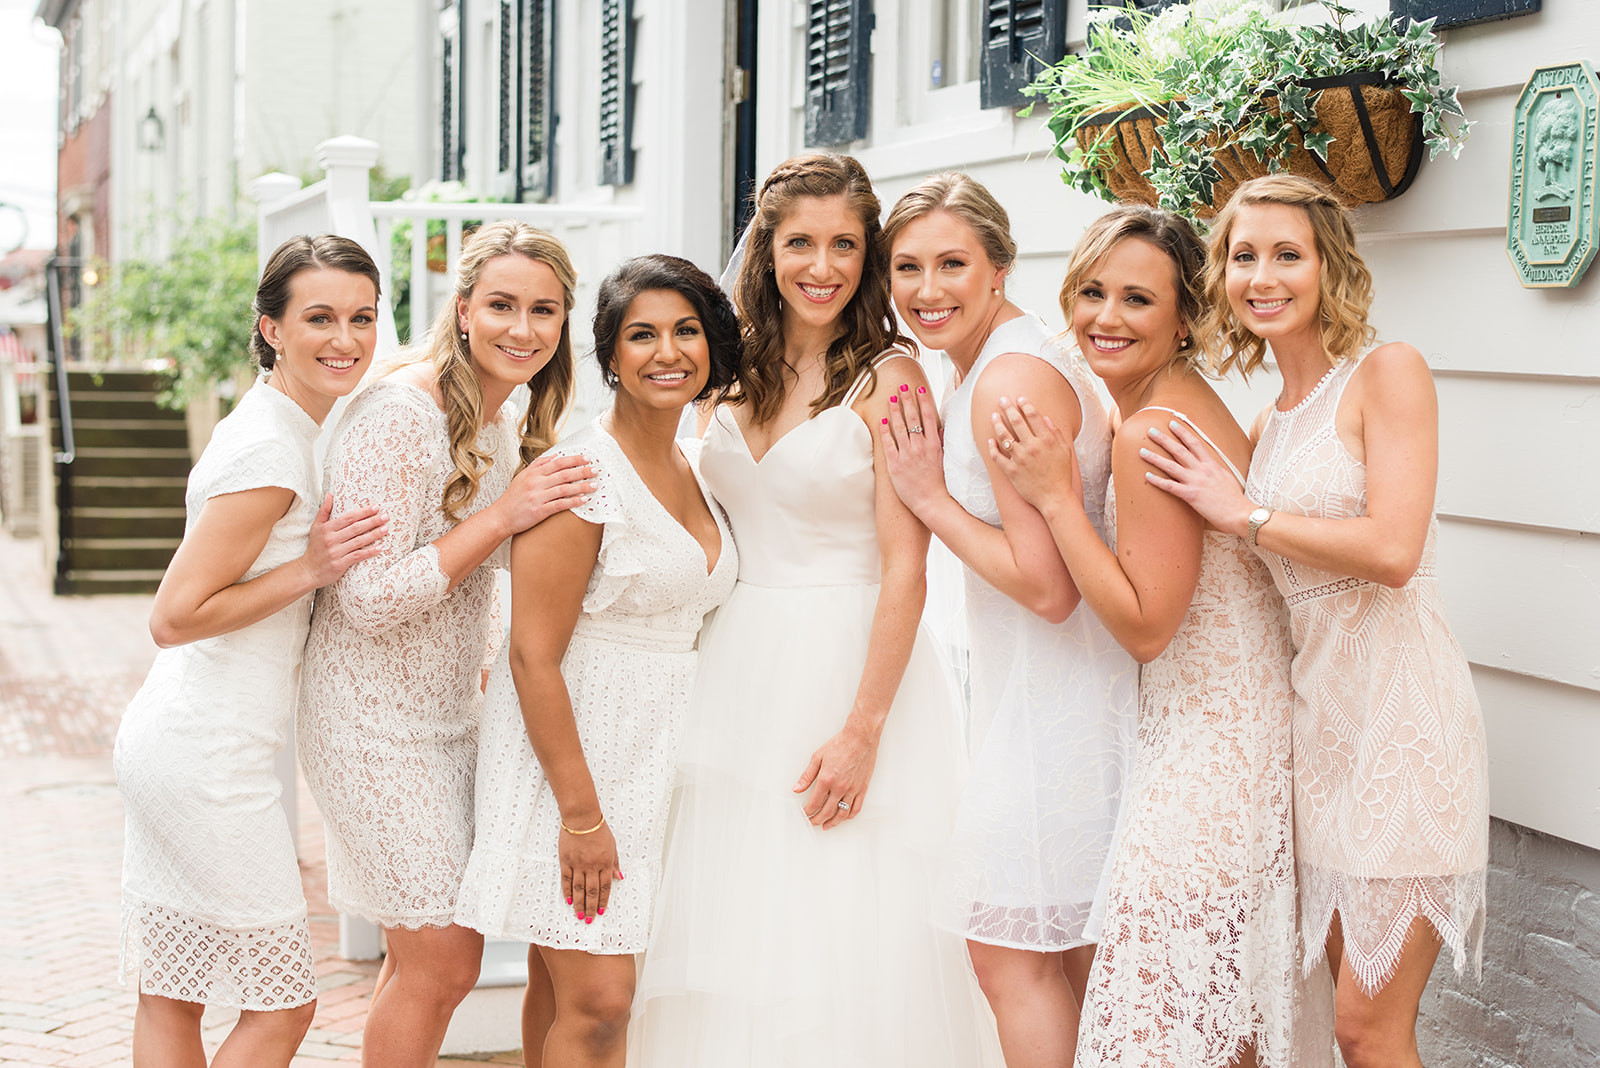 Samara-Alec-Bridesmaids-2-Charming-Grace